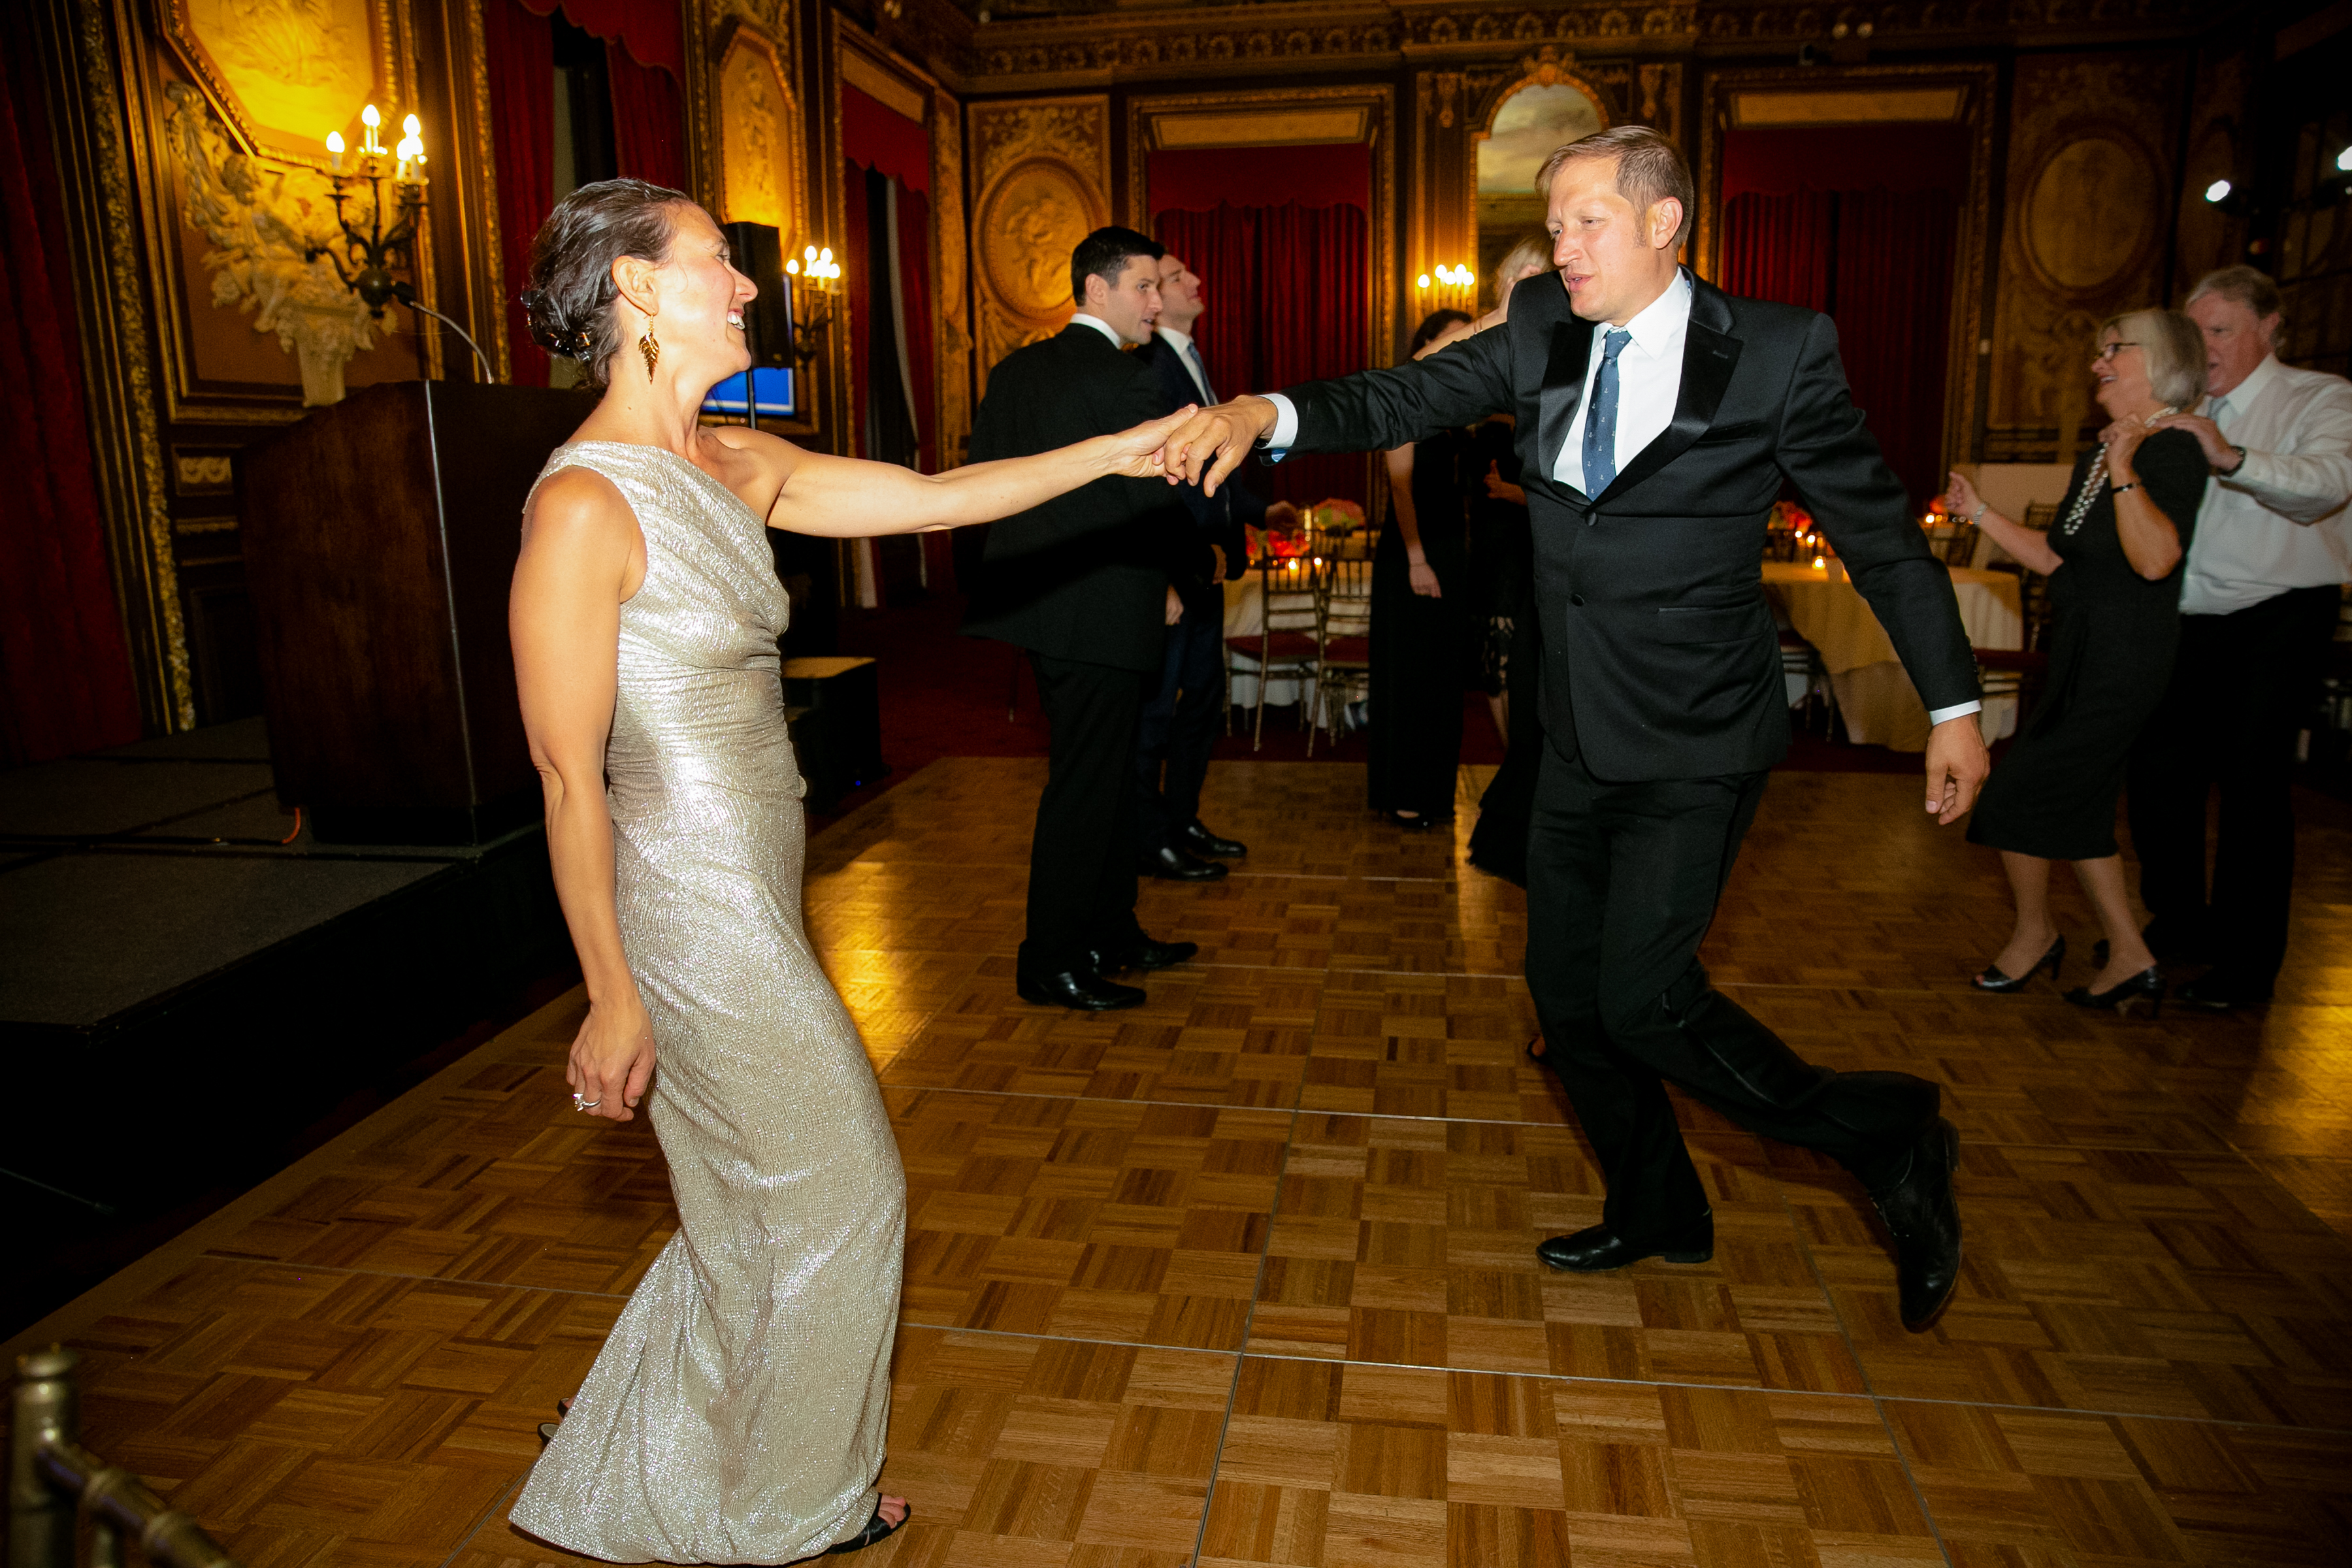 A man in a suit twirls a woman in a silver dress at the 2019 Gala